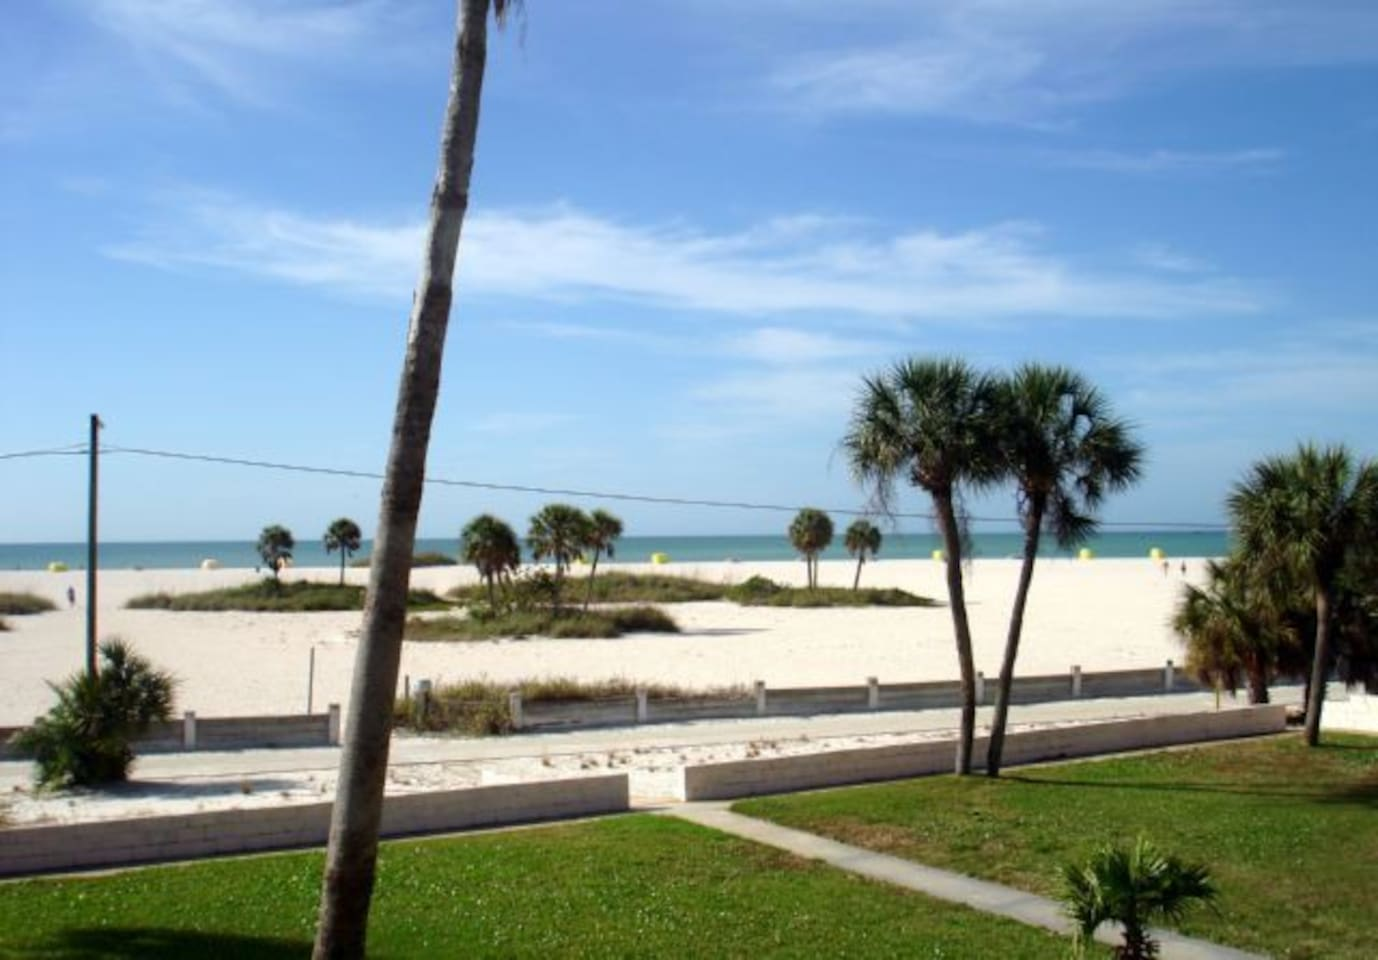 View from the condo complex - YES THATS THE BEACH!